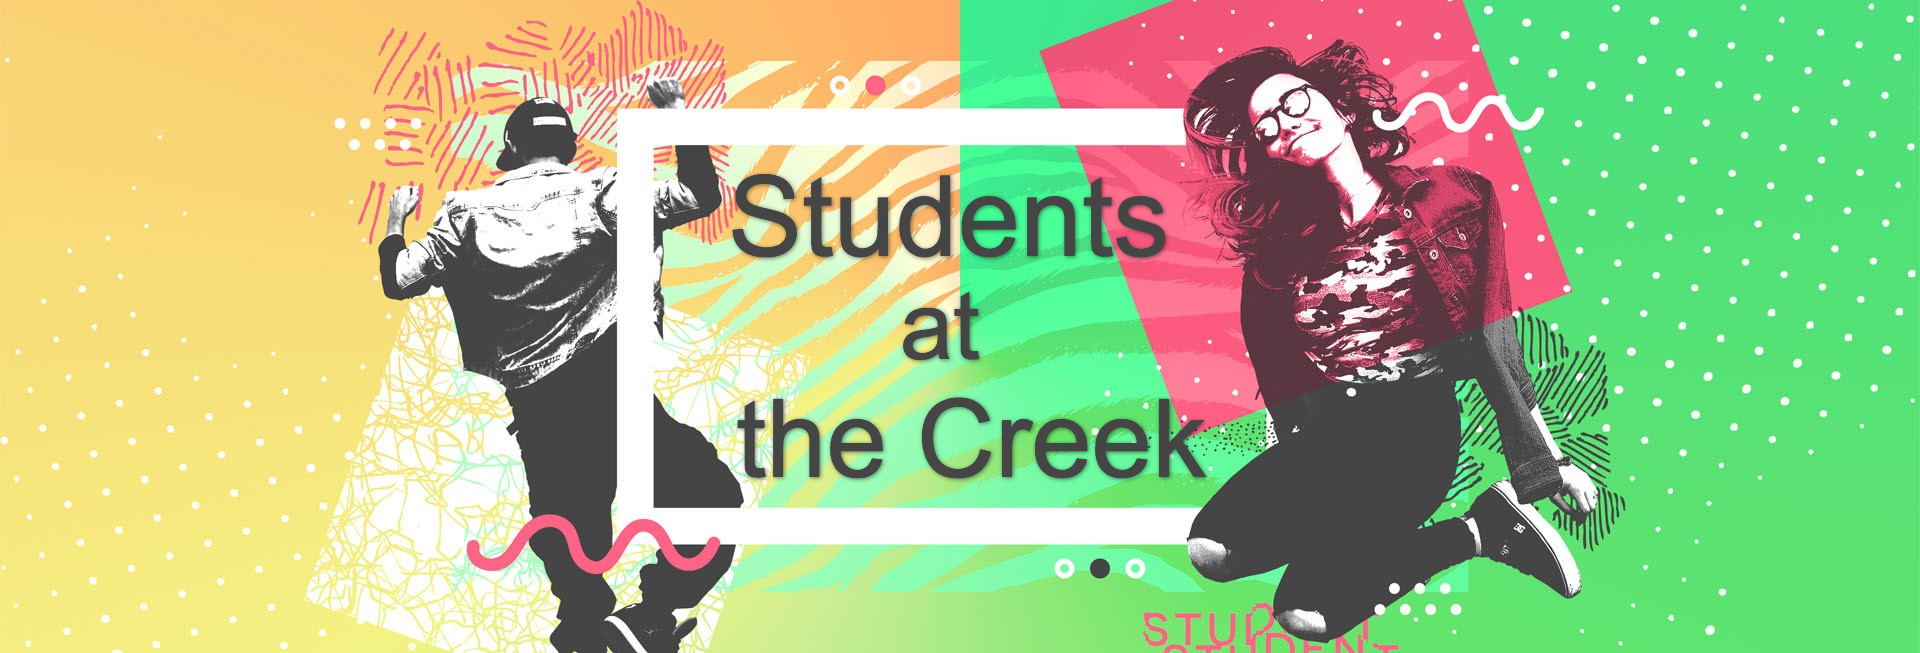 Student Ministry Church Website Banner